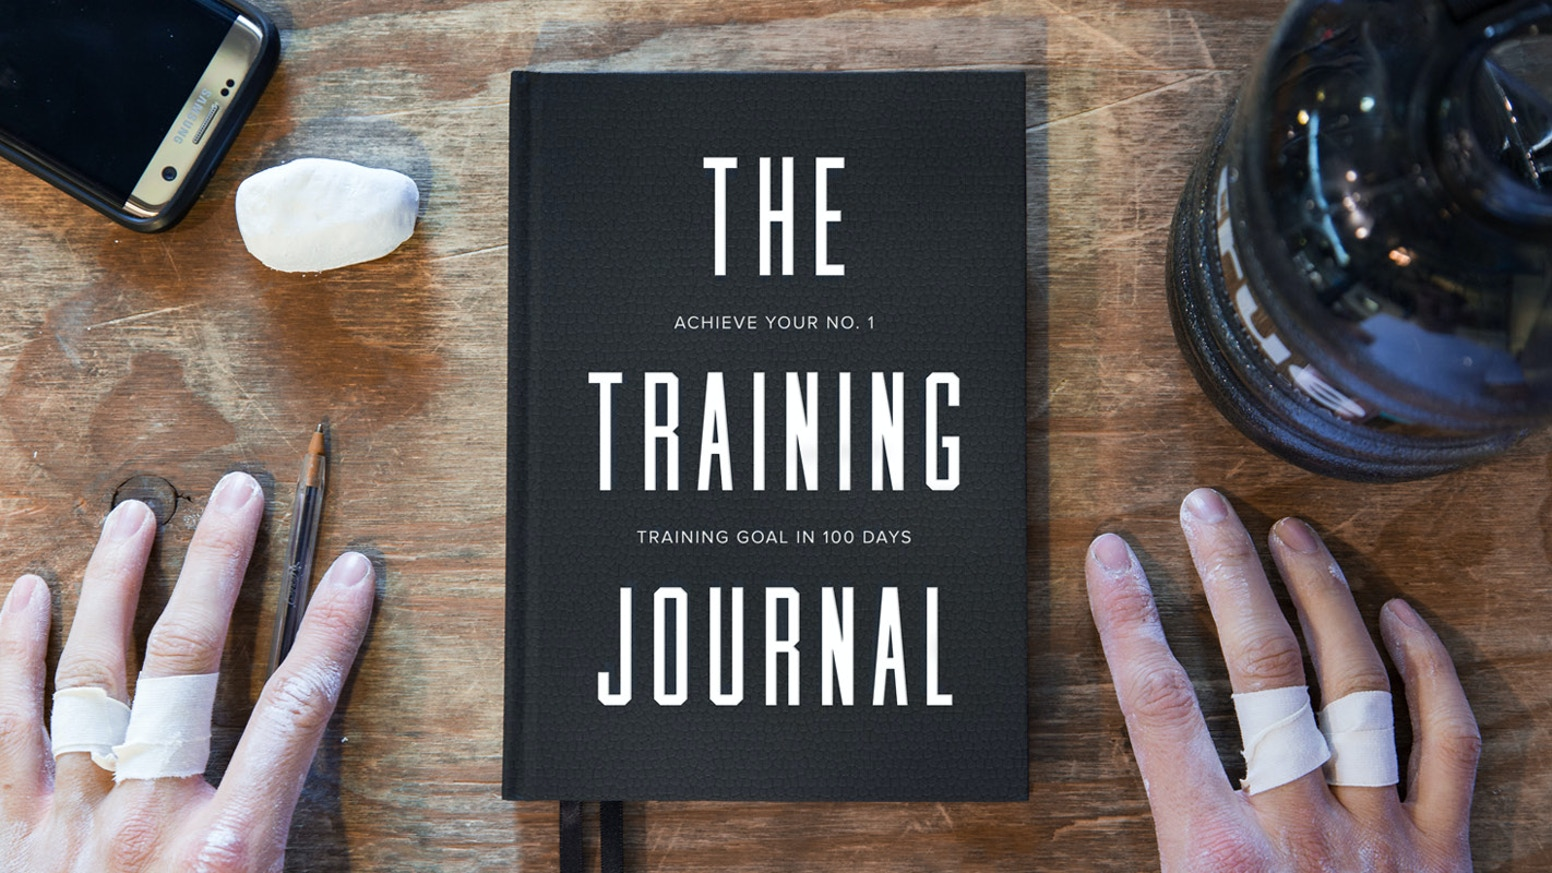 The most powerful tool to achieve your number 1 training goal in 100 days.